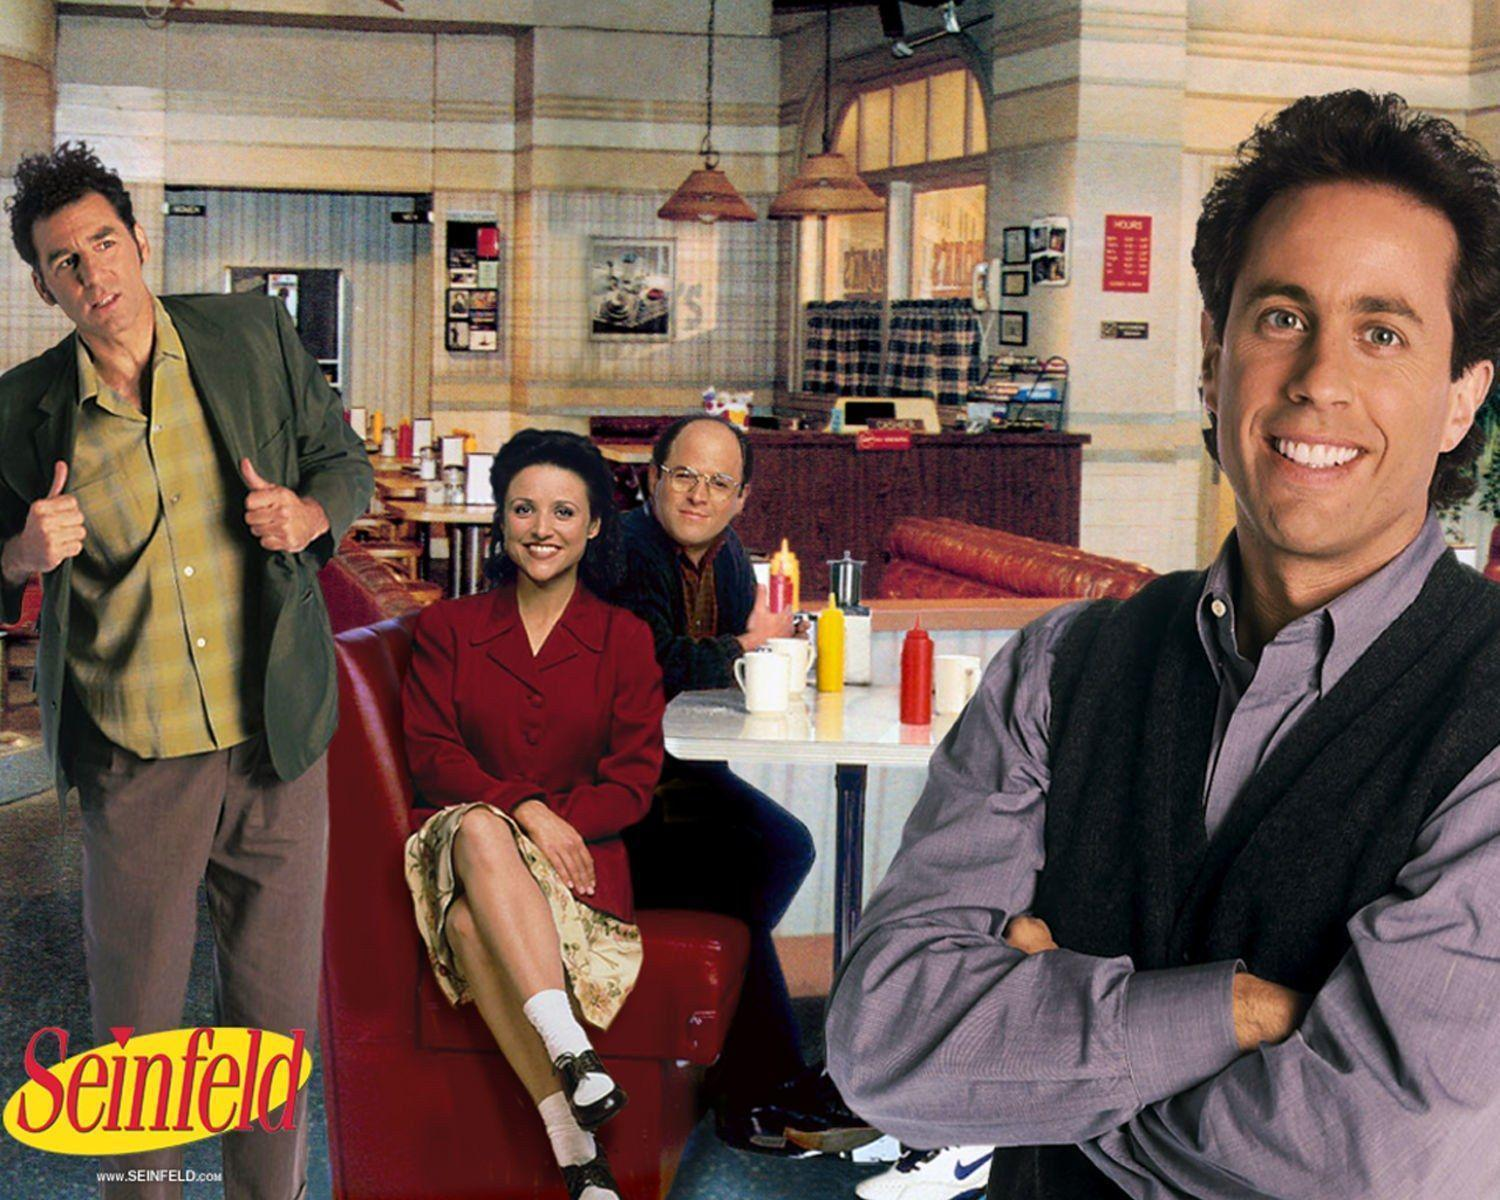 Seinfeld Coming to Hulu: 11 Best Seinfeld GIFs